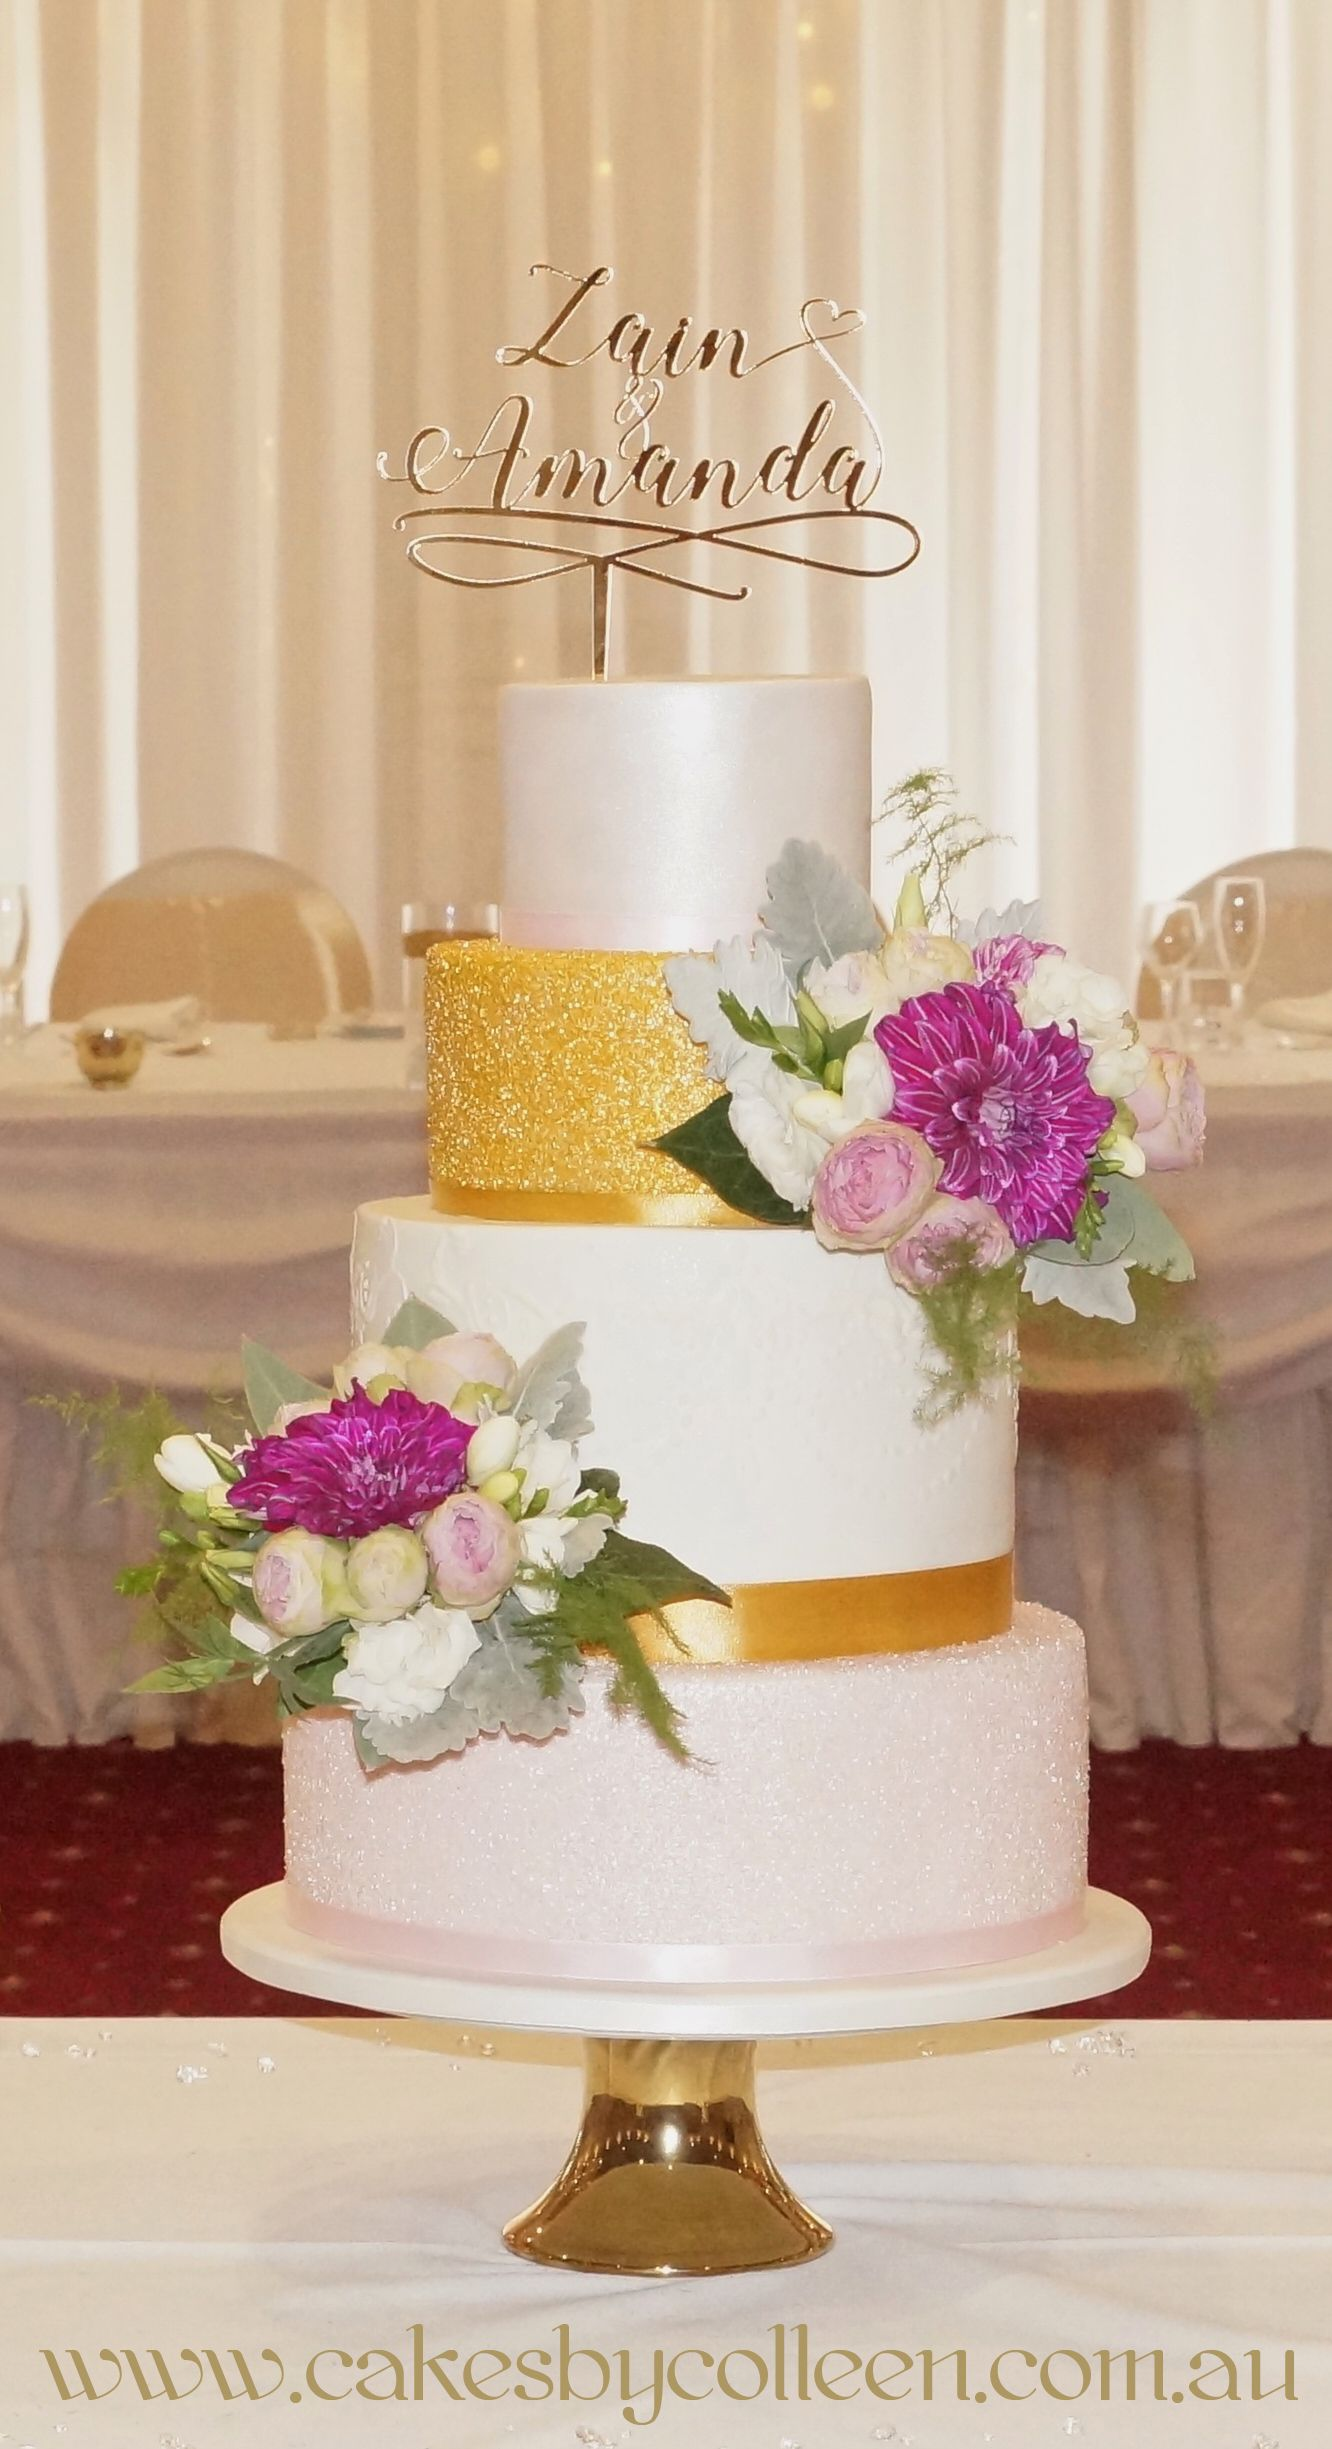 Zain Amandas 4 Tier Wedding Cake with floral detail customised